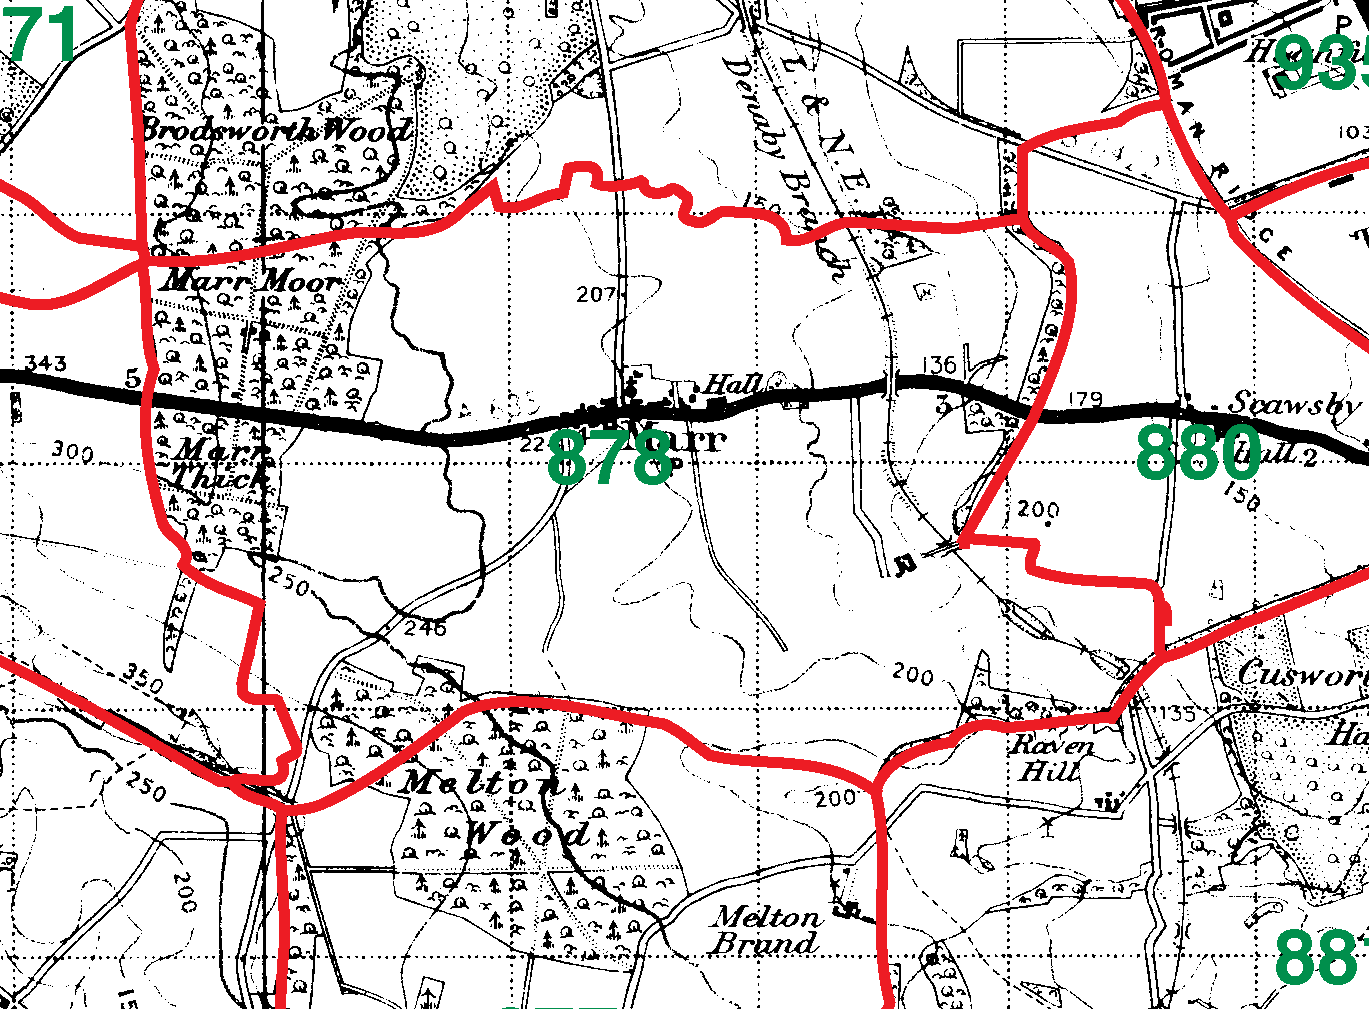 Marr boundaries map